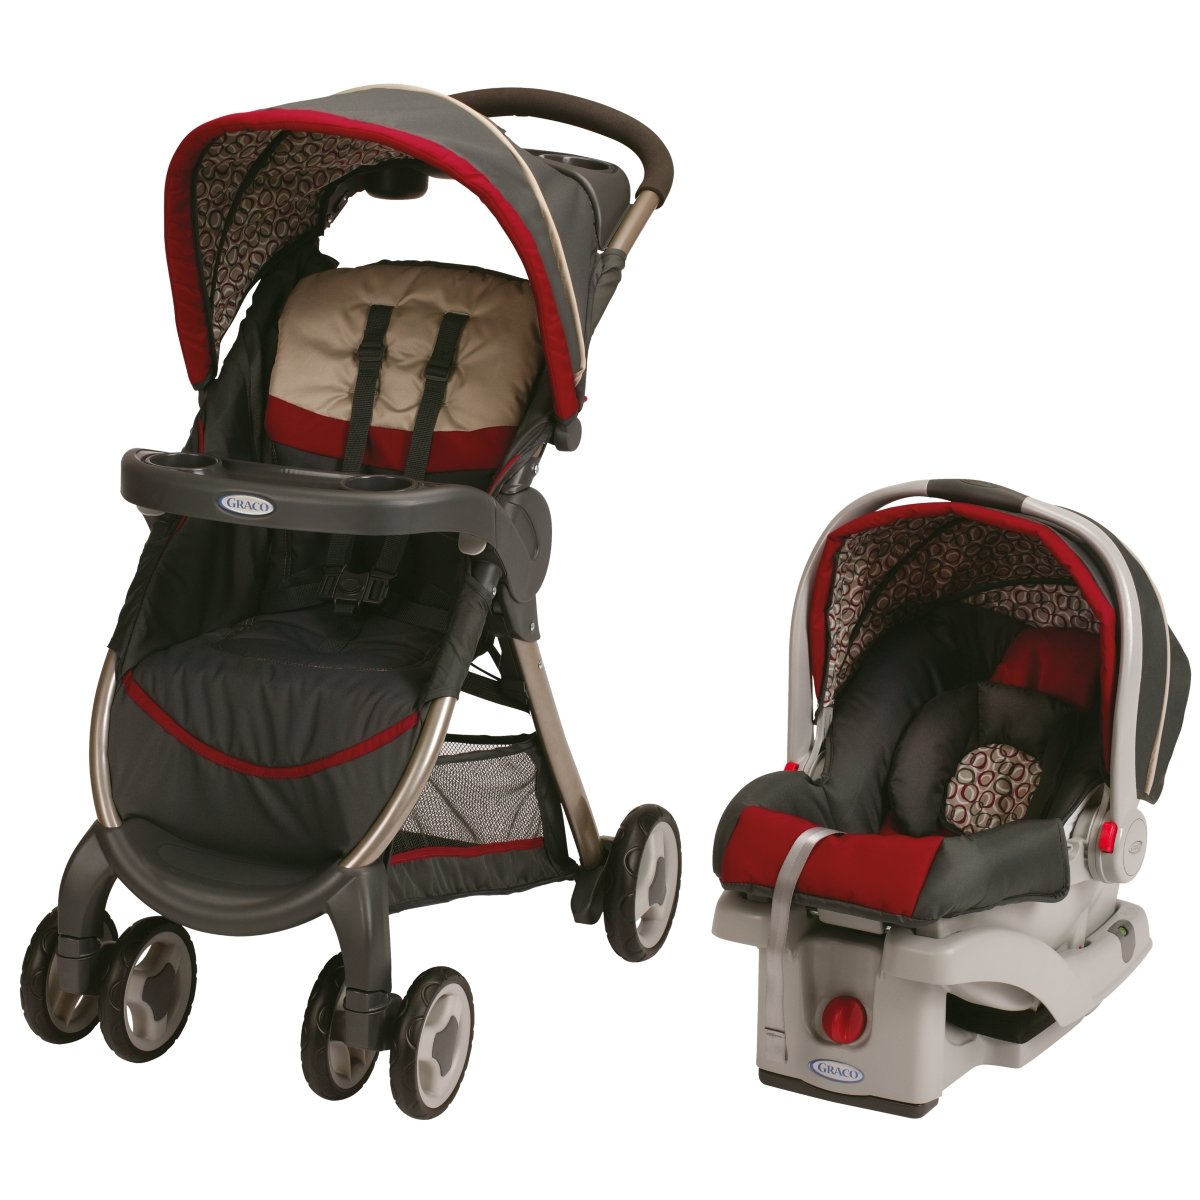 Graco Childrens Products Graco FastAction Fold Click Connect Travel System/Click Connect 30, Finley at Sears.com